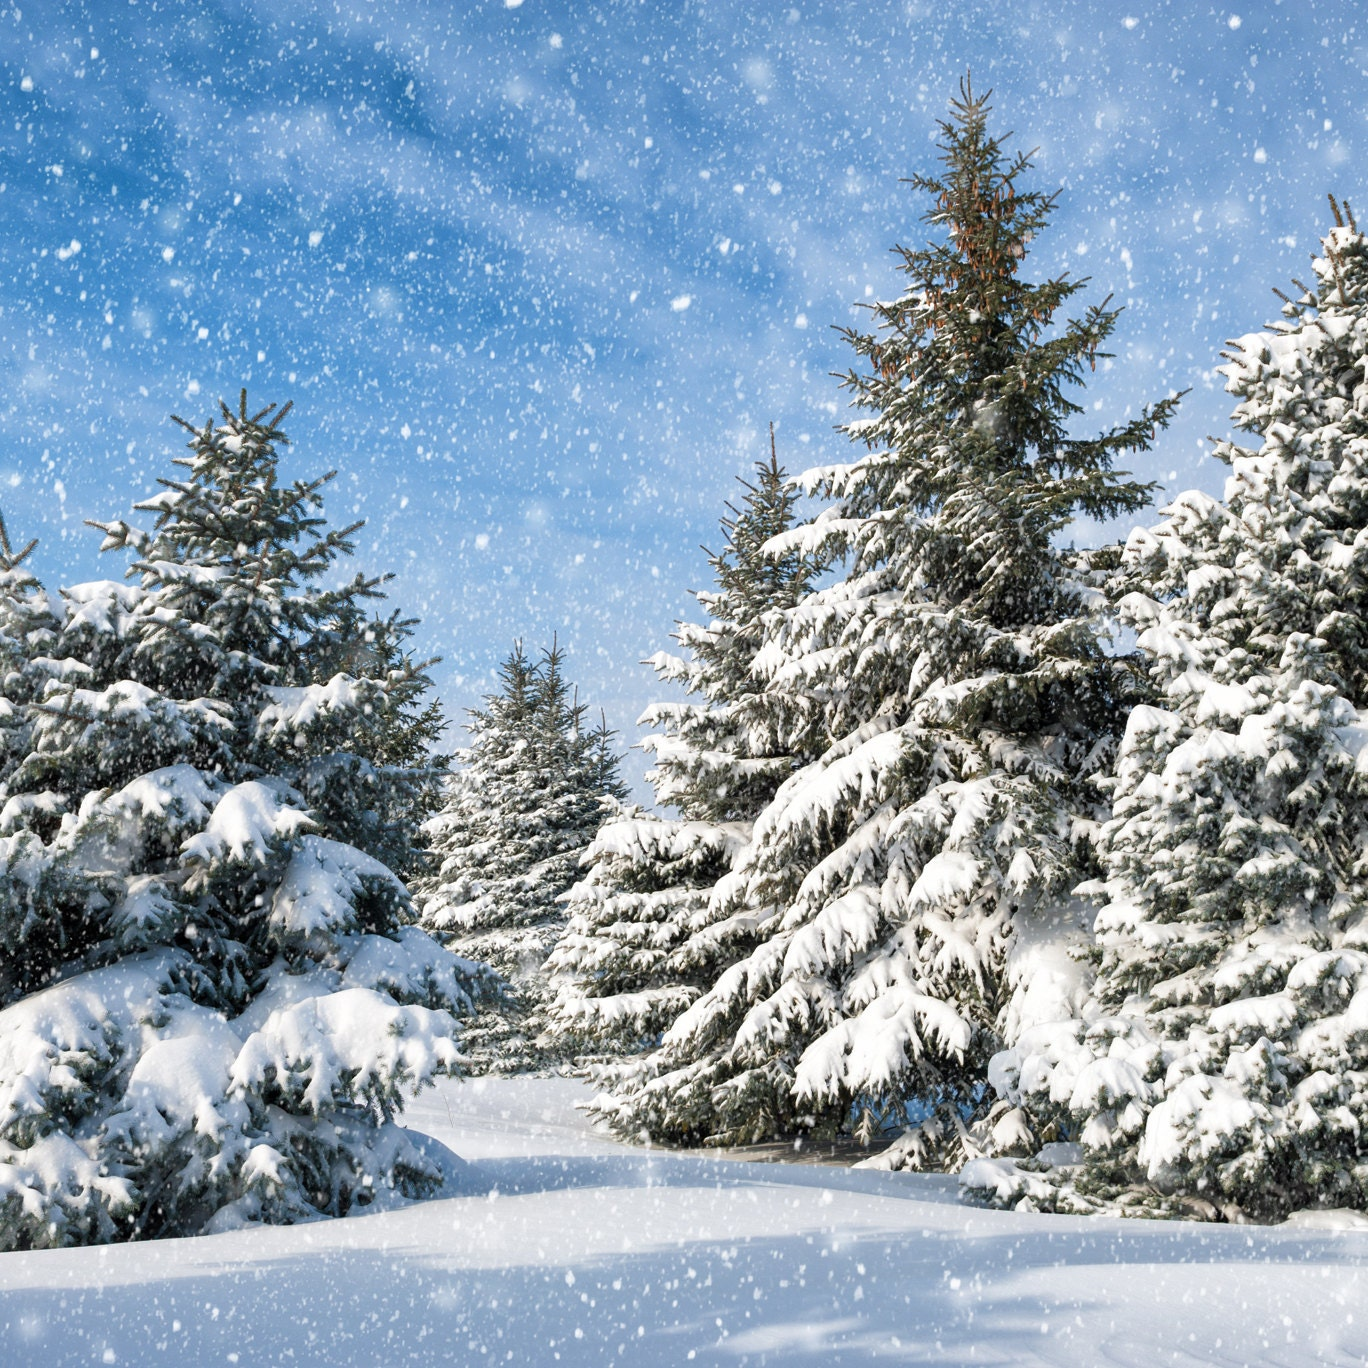 snow forest backdrop christmas tree white snow winter. Black Bedroom Furniture Sets. Home Design Ideas